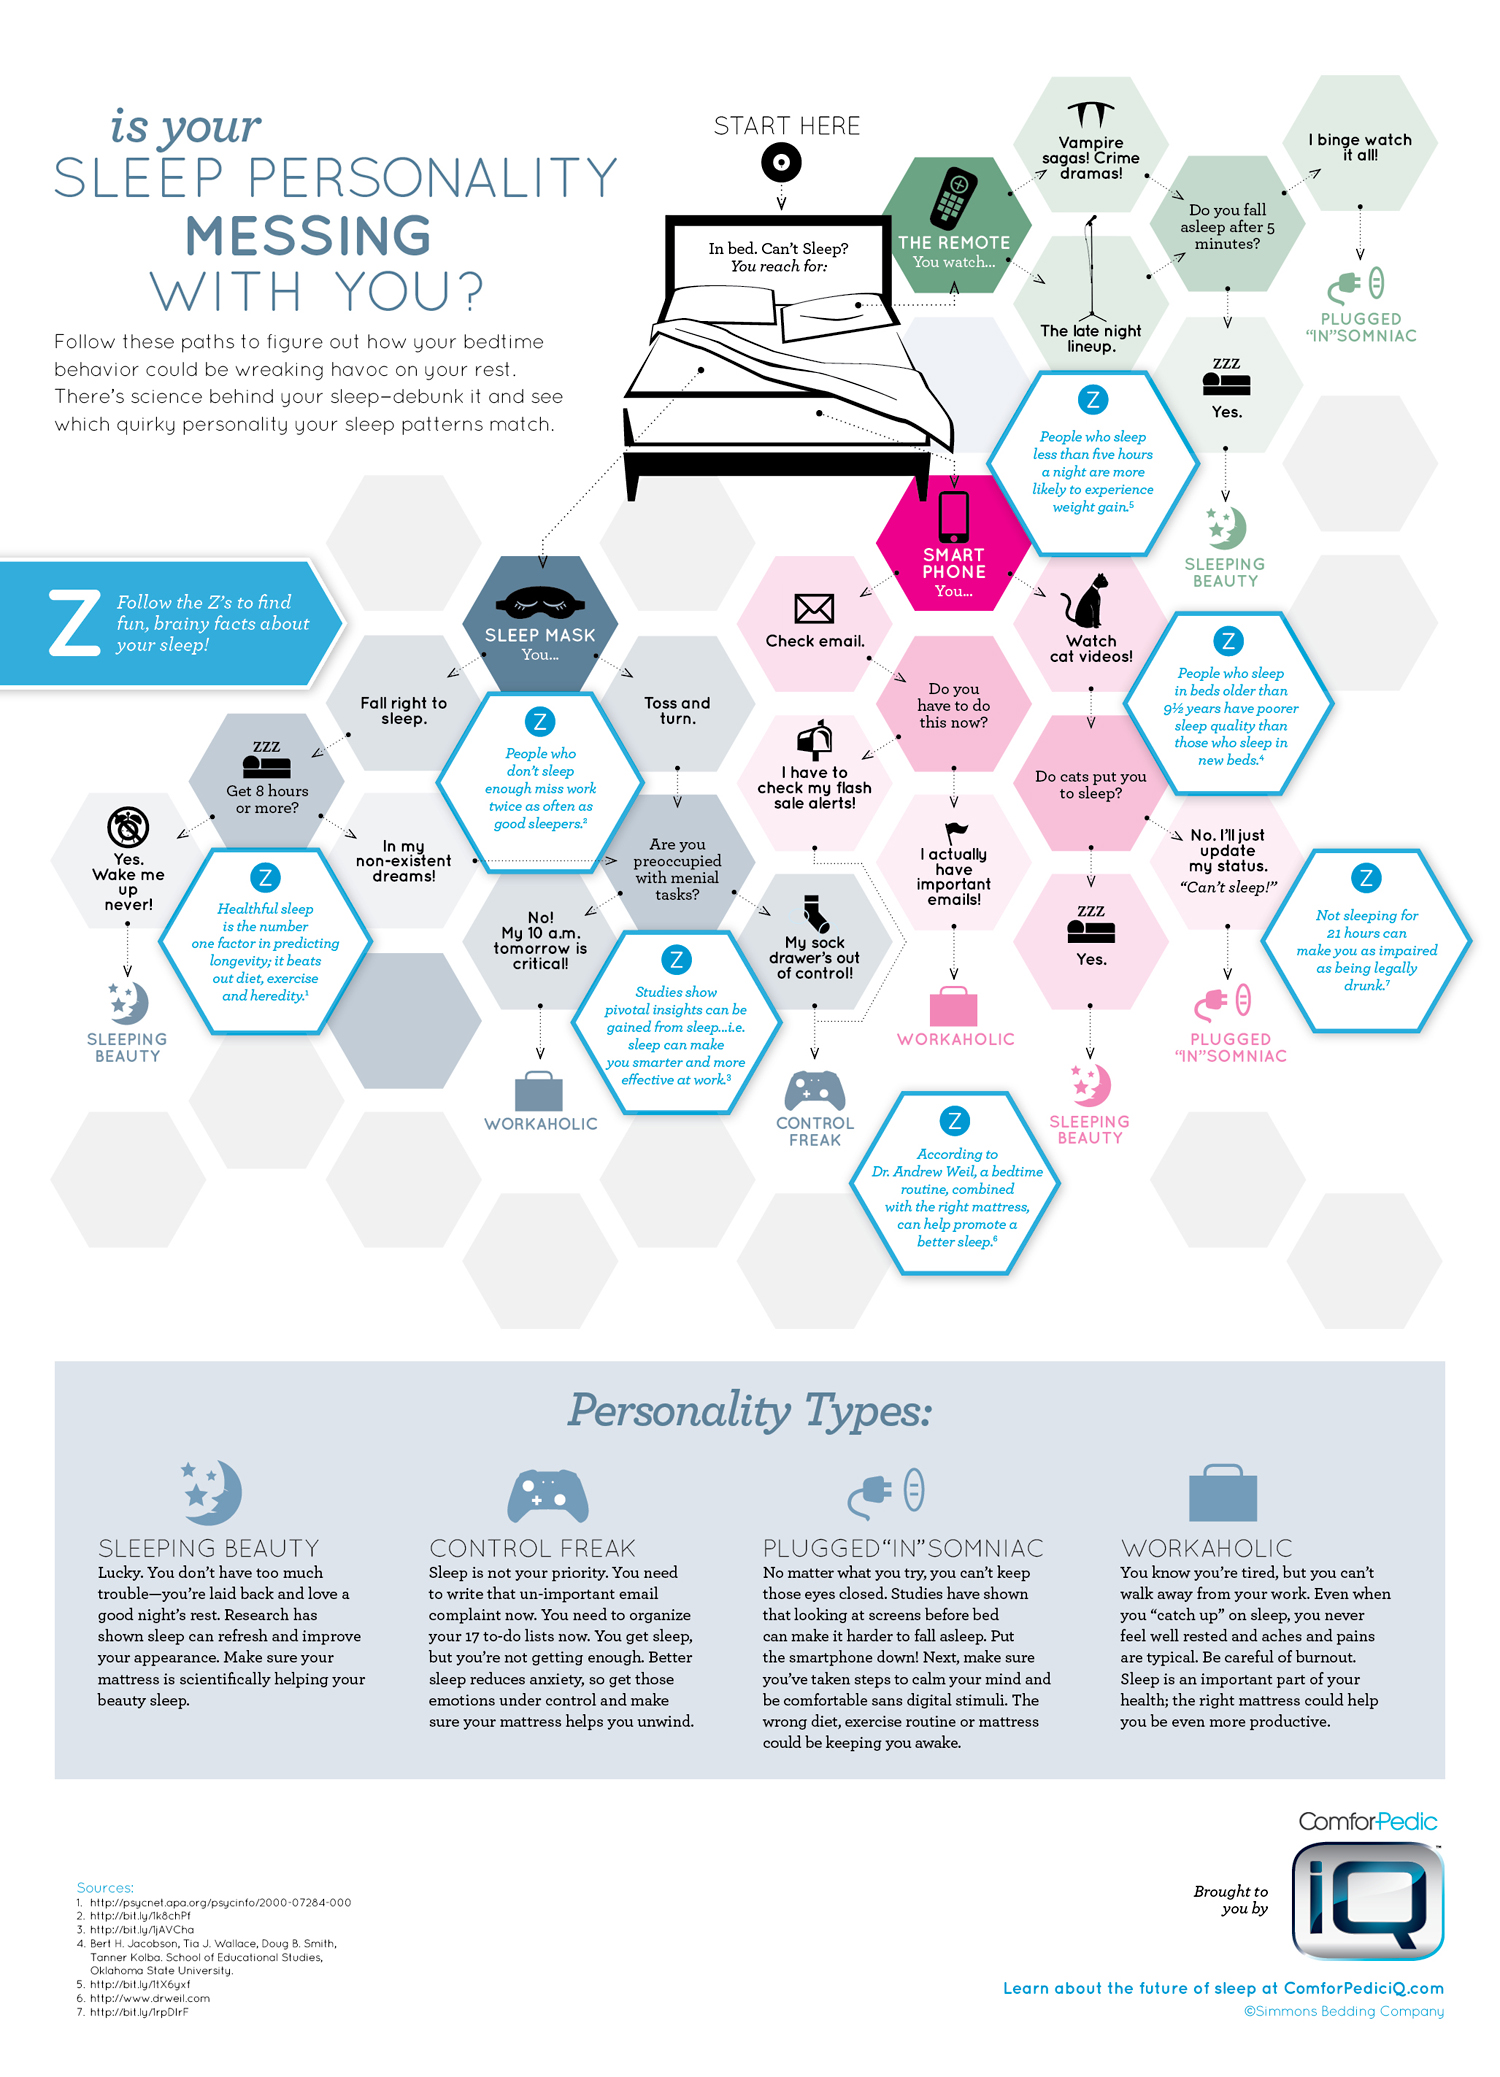 Surprise! I'm a Workaholic. What's Your Sleep Personality?